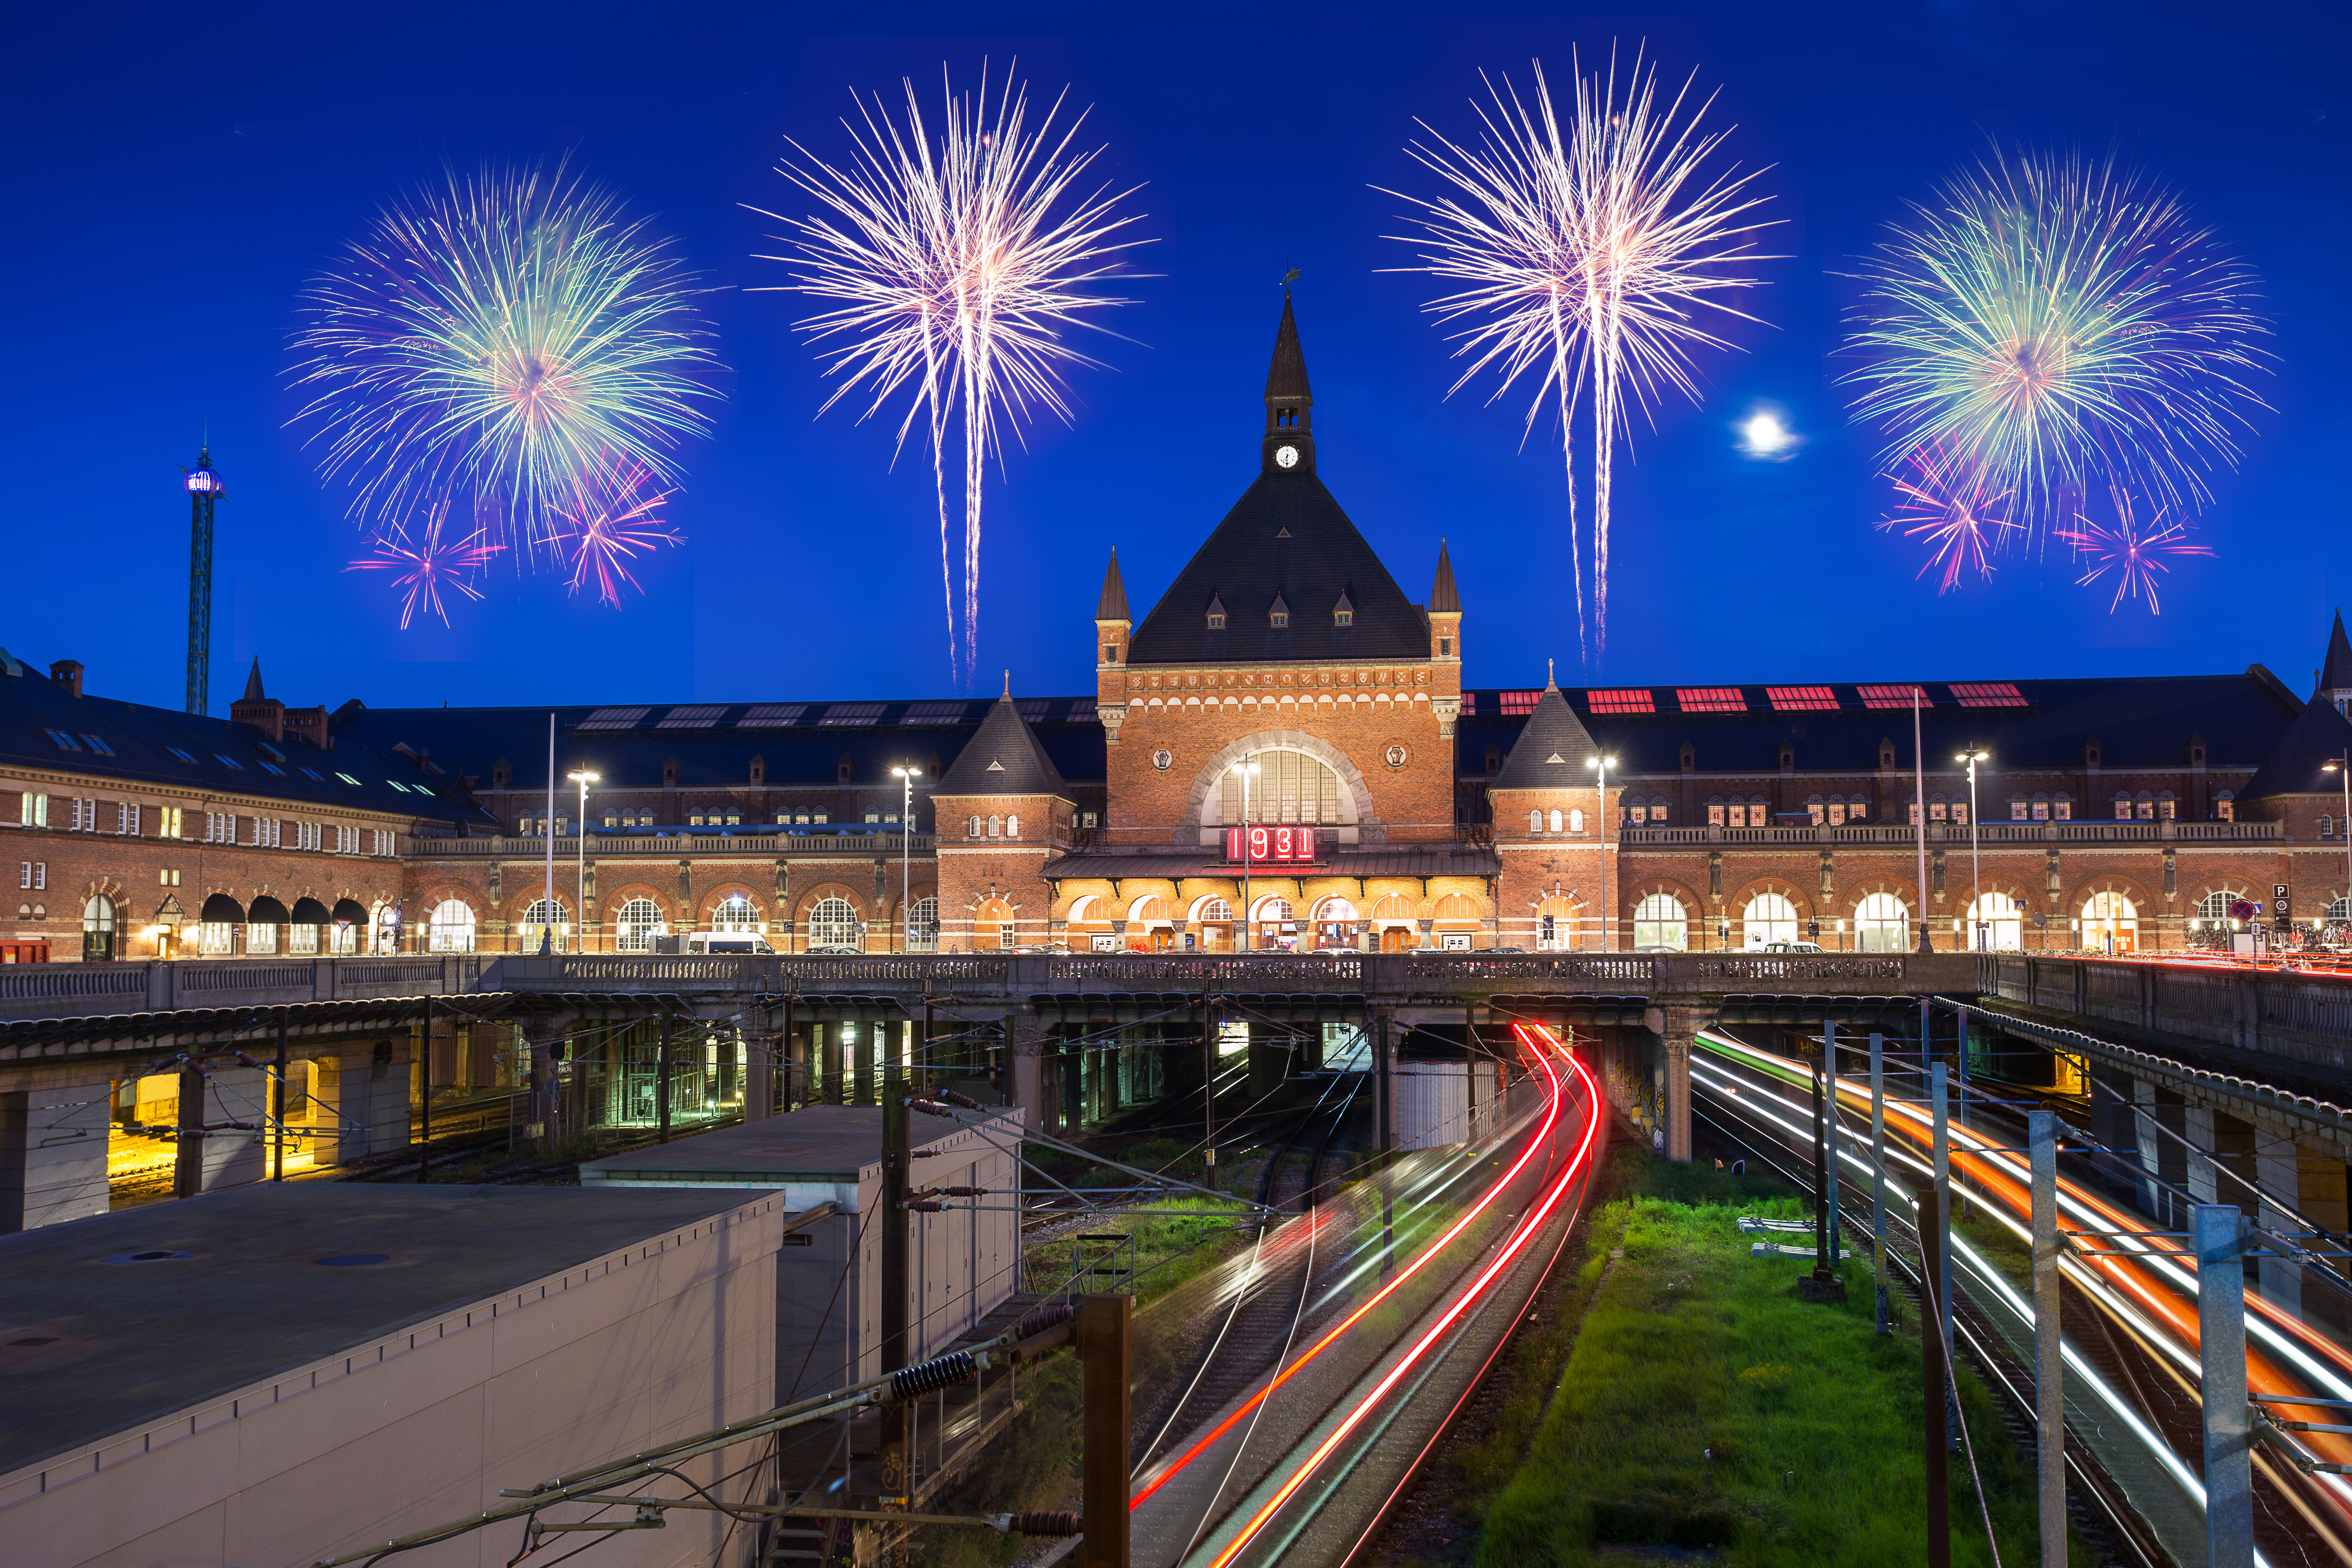 train run into Copenhagen central station in Denmark with clear